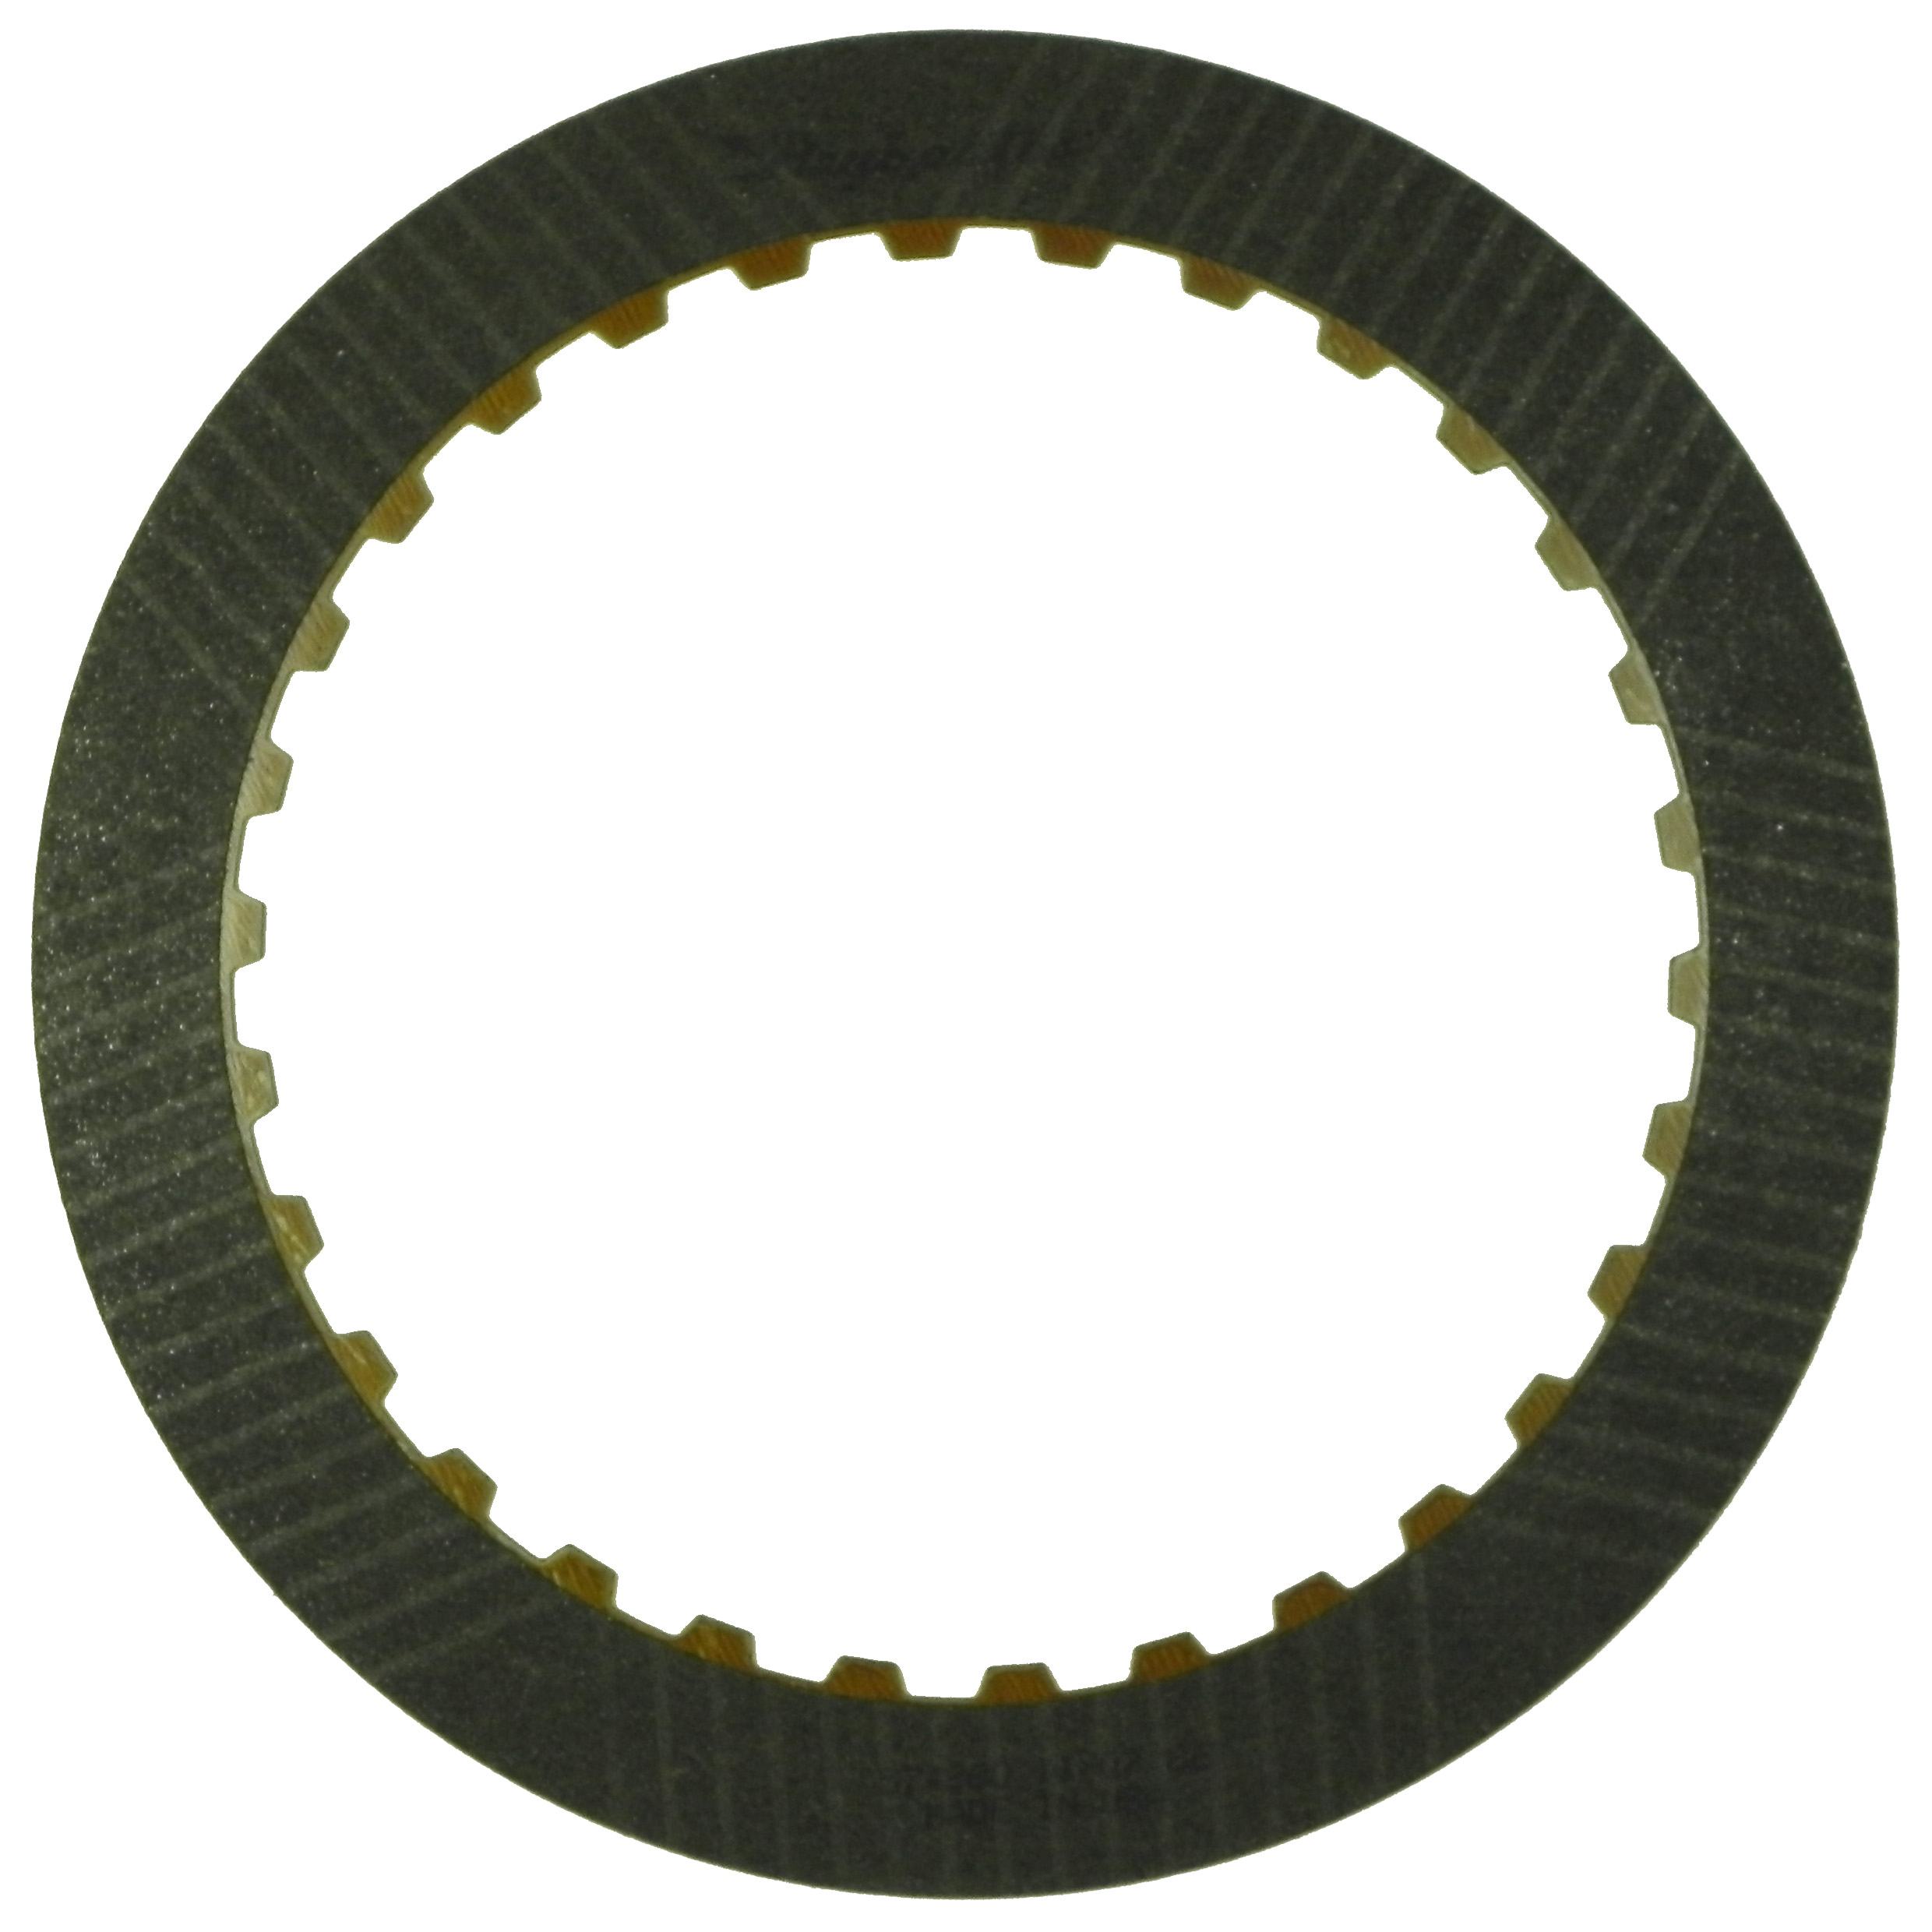 R574260 | 1995-ON Friction Clutch Plate High Energy C (Peugeot) Double Sided, ID Spline High Energy 4HP20